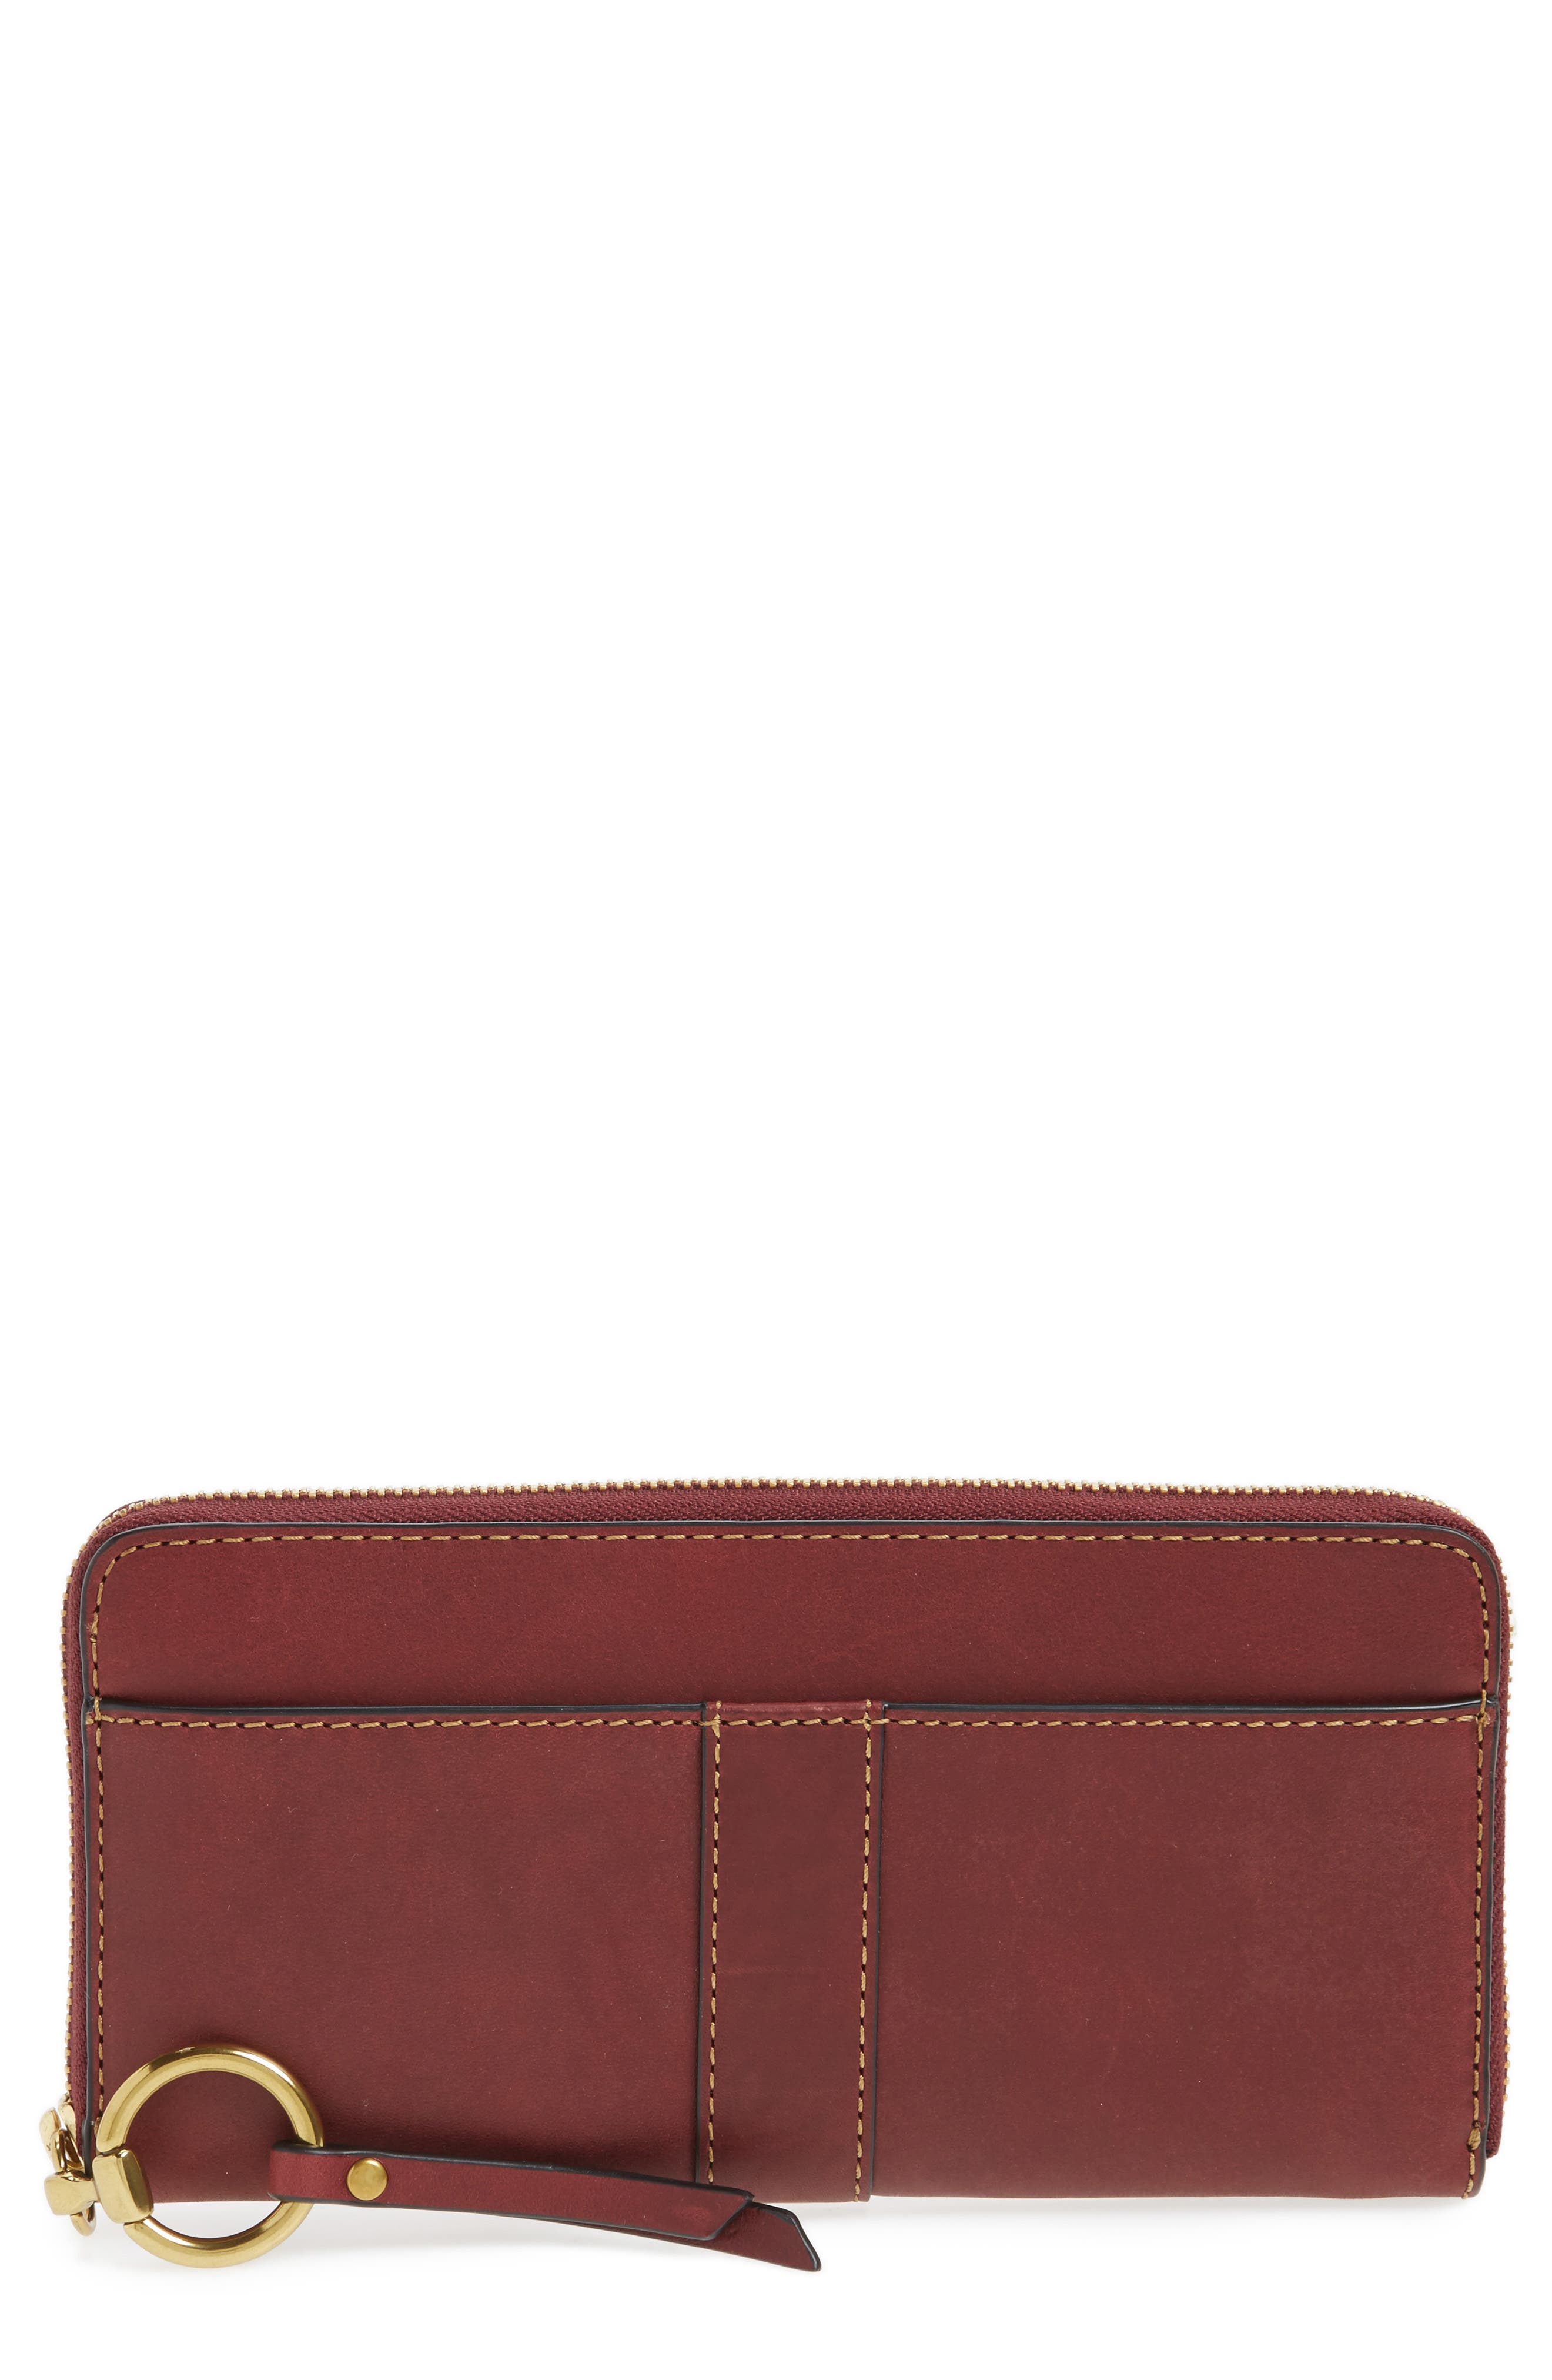 Ilana Harness Leather Zip Wallet,                         Main,                         color, Wine